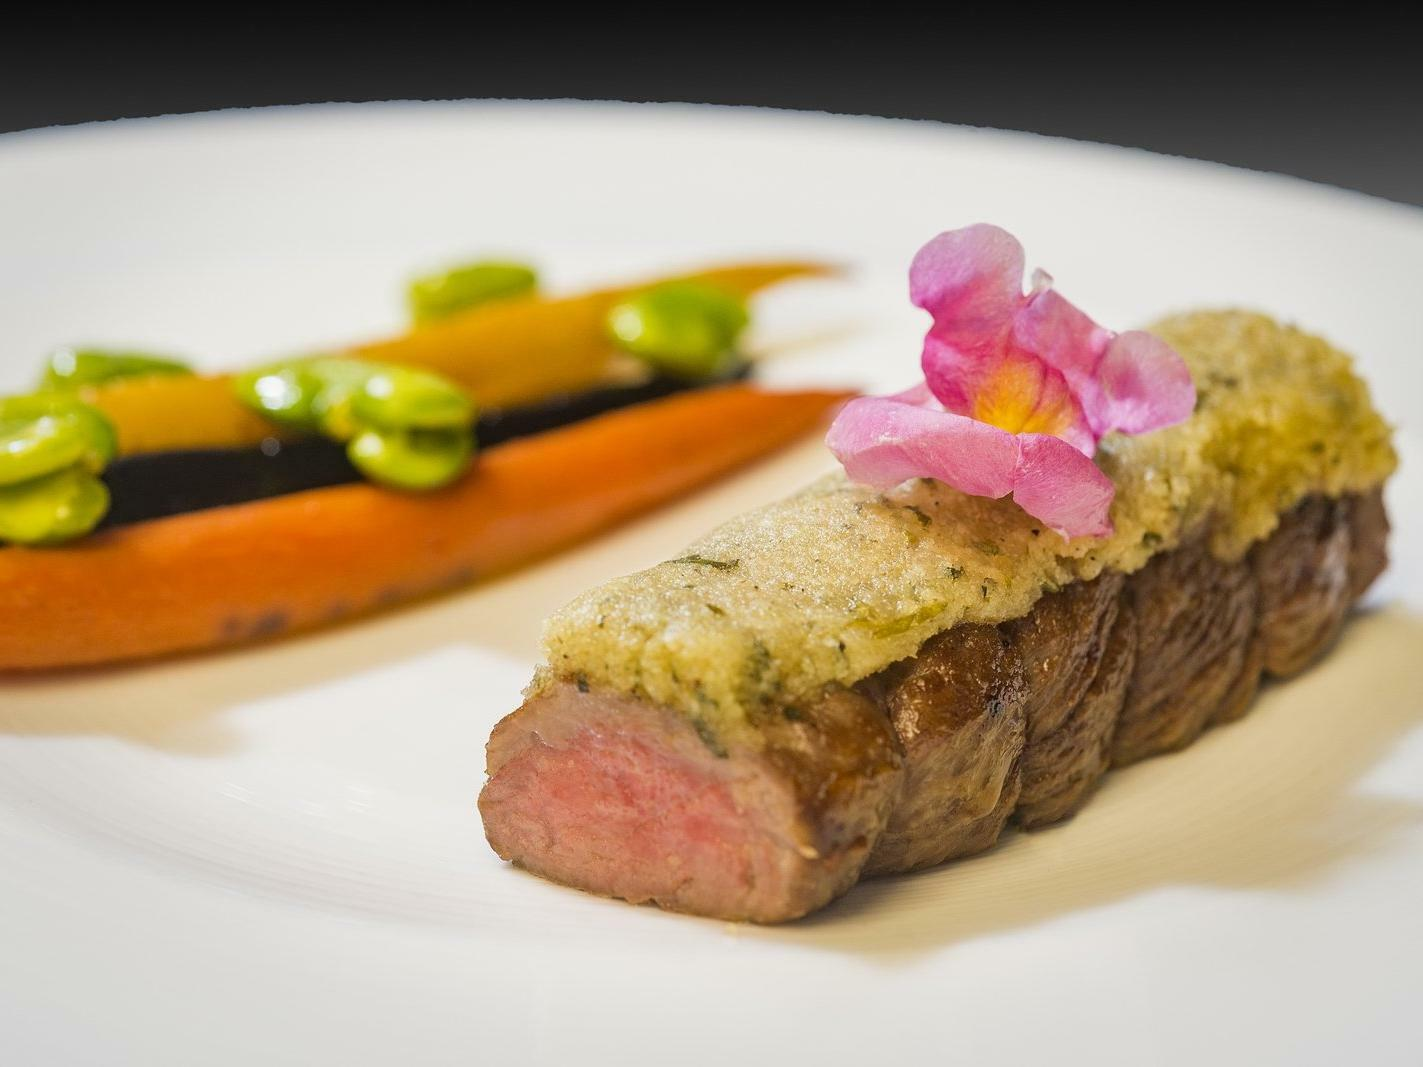 cooked steak and vegetables on a plate